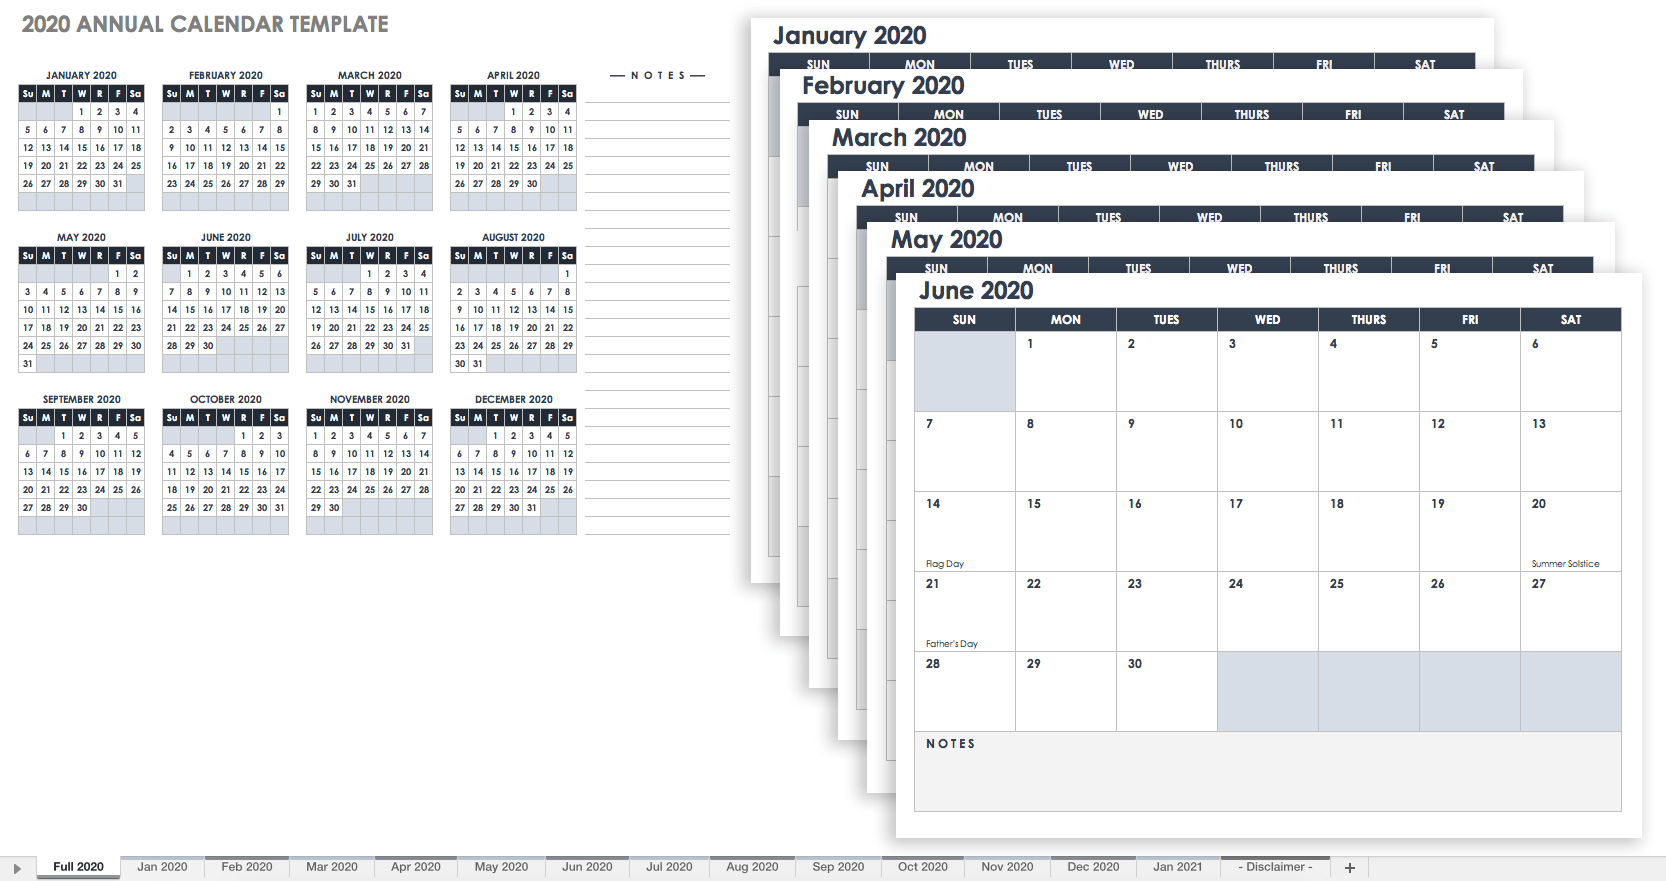 Free Blank Calendar Templates - Smartsheet - Free Printable Out Of Service Sign